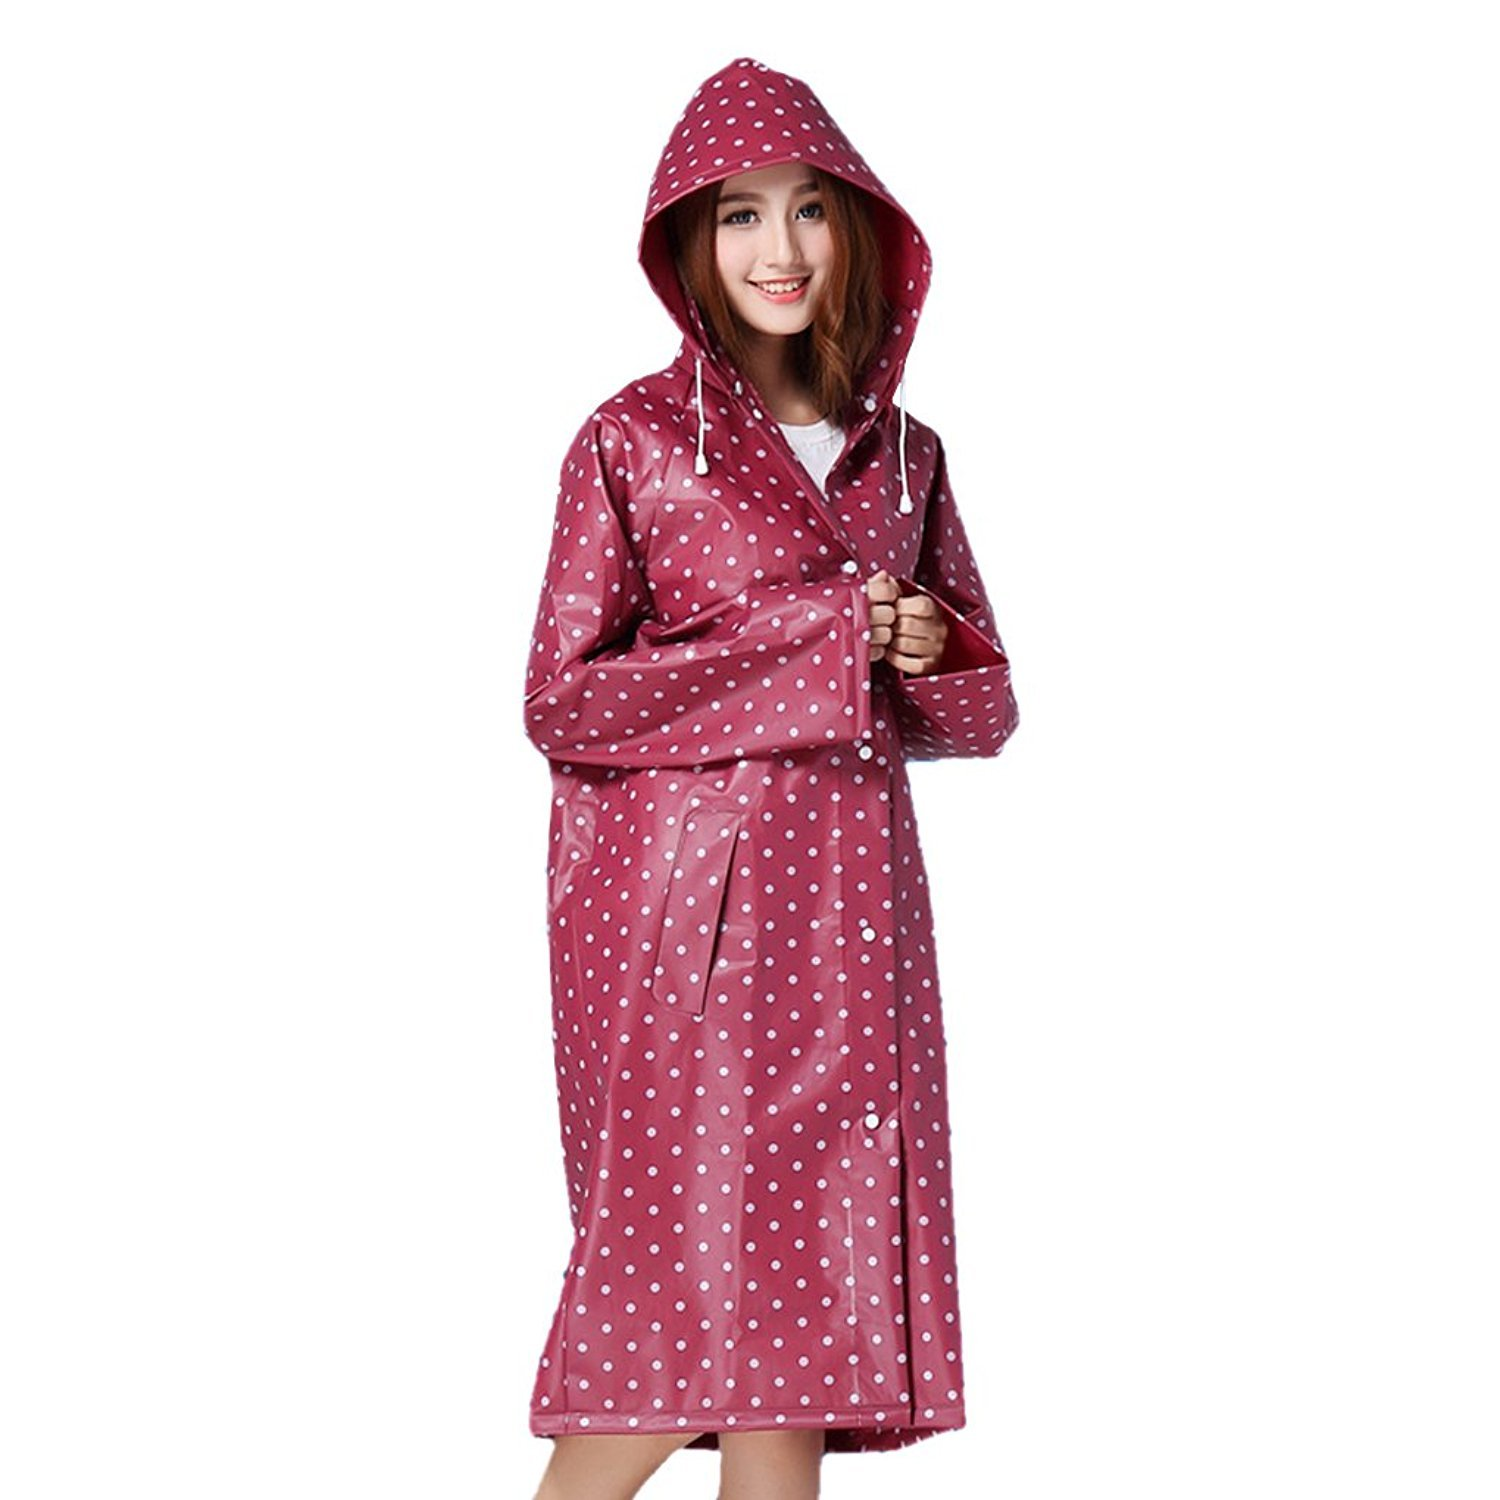 Echo Paths Womens Travel Waterproof Poncho Cycling Hooded Raincoat Long Rain Jacket Portable Red One Size